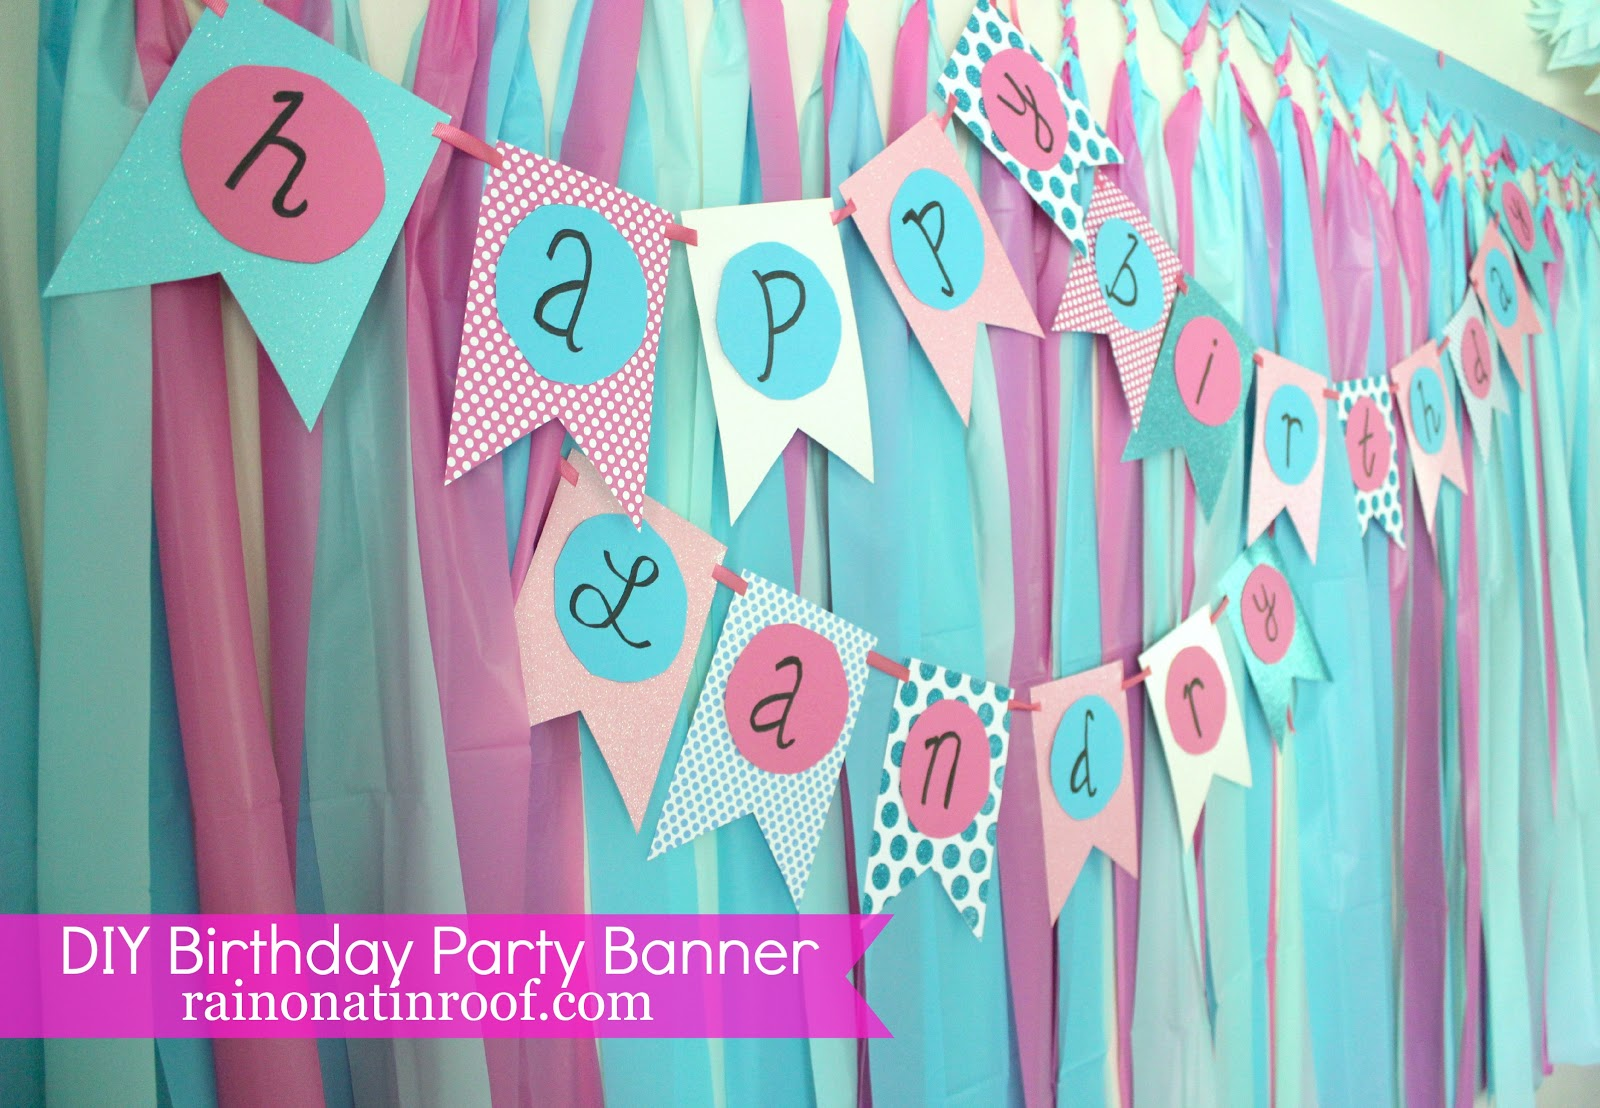 DIY Party Banner | DIY Party Banner Template | DIY Party Decorations | DIY Party Ideas  sc 1 st  Rain on a Tin Roof & Simple DIY Birthday Banner Tutorial